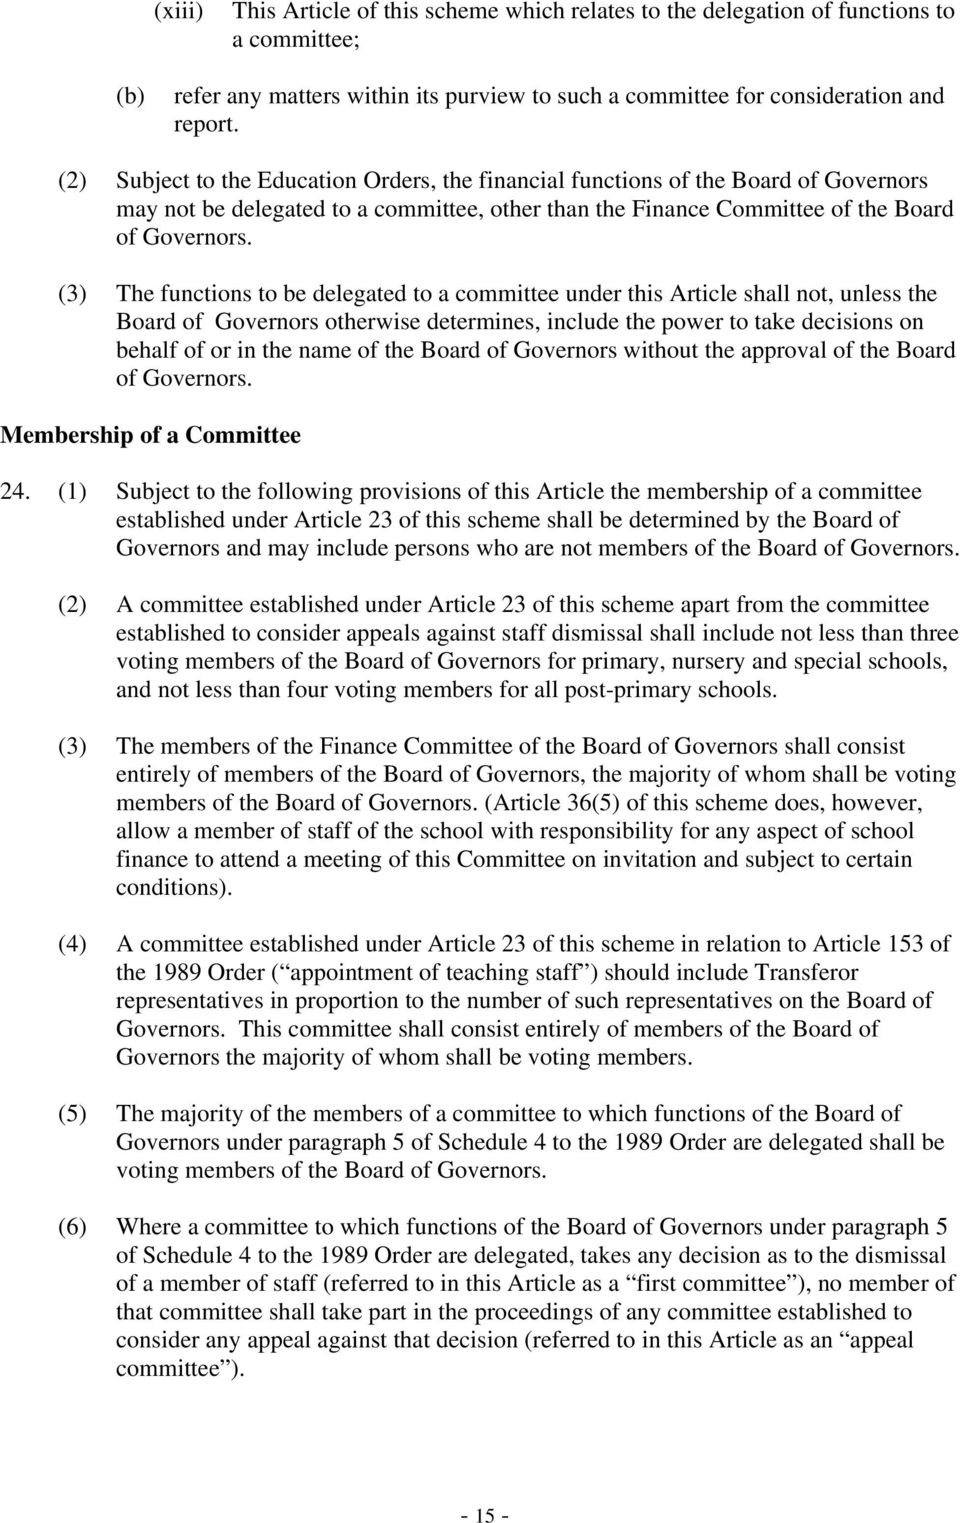 (3) The functions to be delegated to a committee under this Article shall not, unless the Board of Governors otherwise determines, include the power to take decisions on behalf of or in the name of